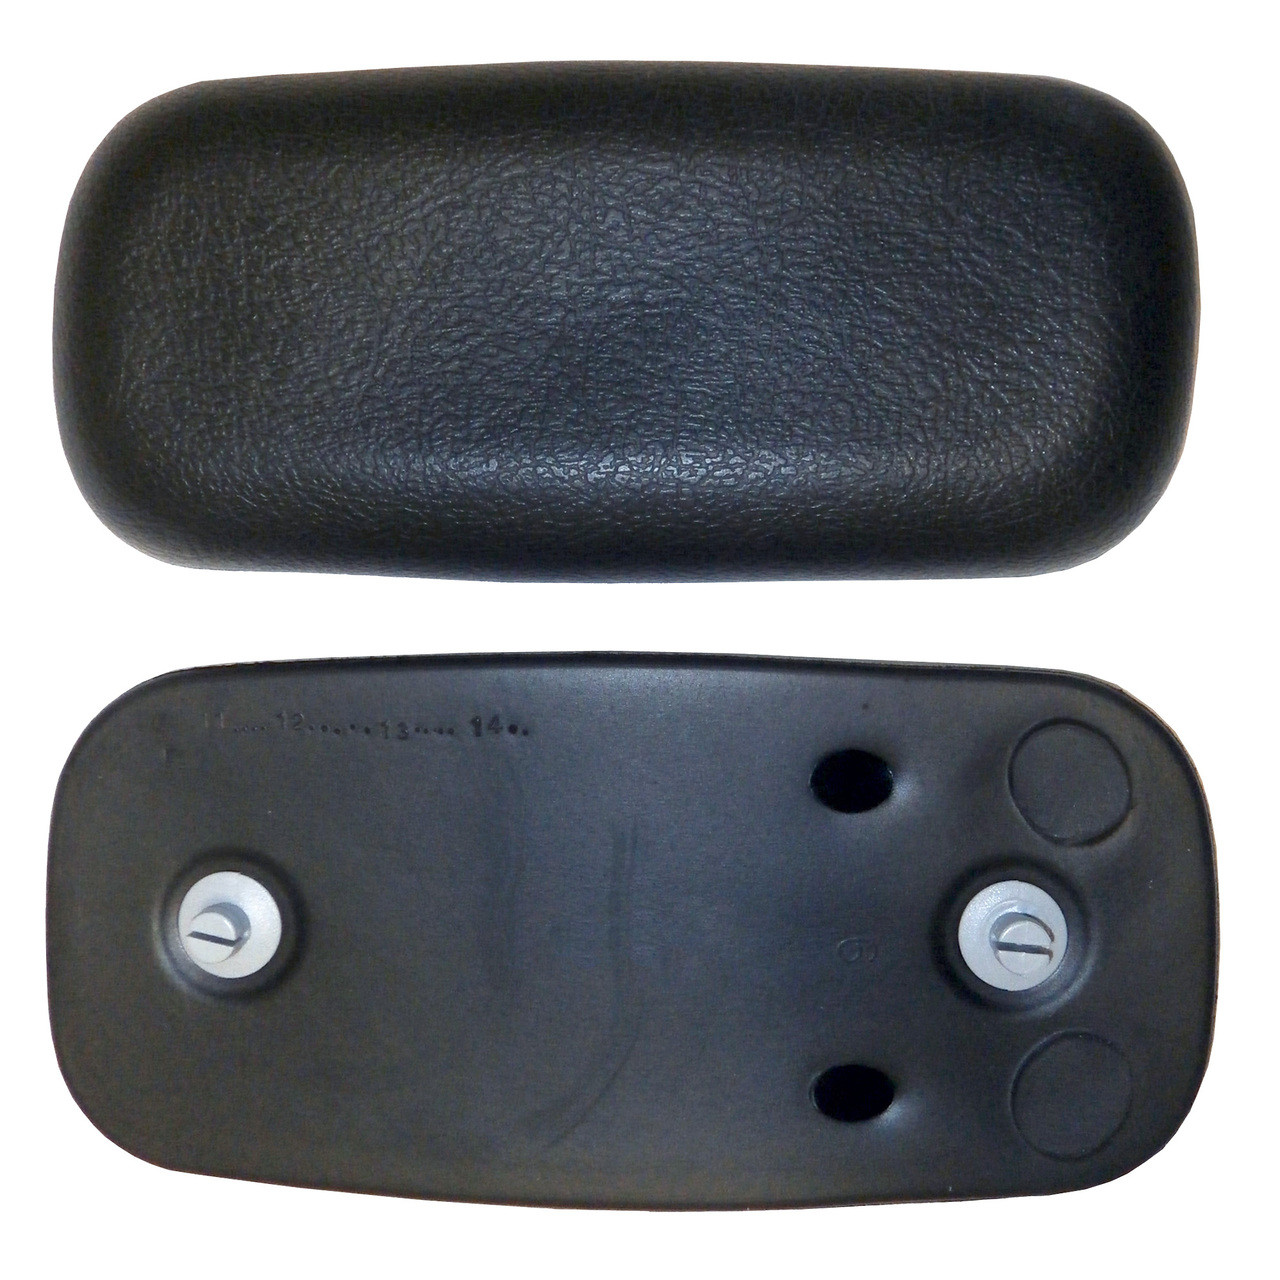 Master Spas Freedom Spa Generic Small Hot Tub Lounge Pillow Headrest